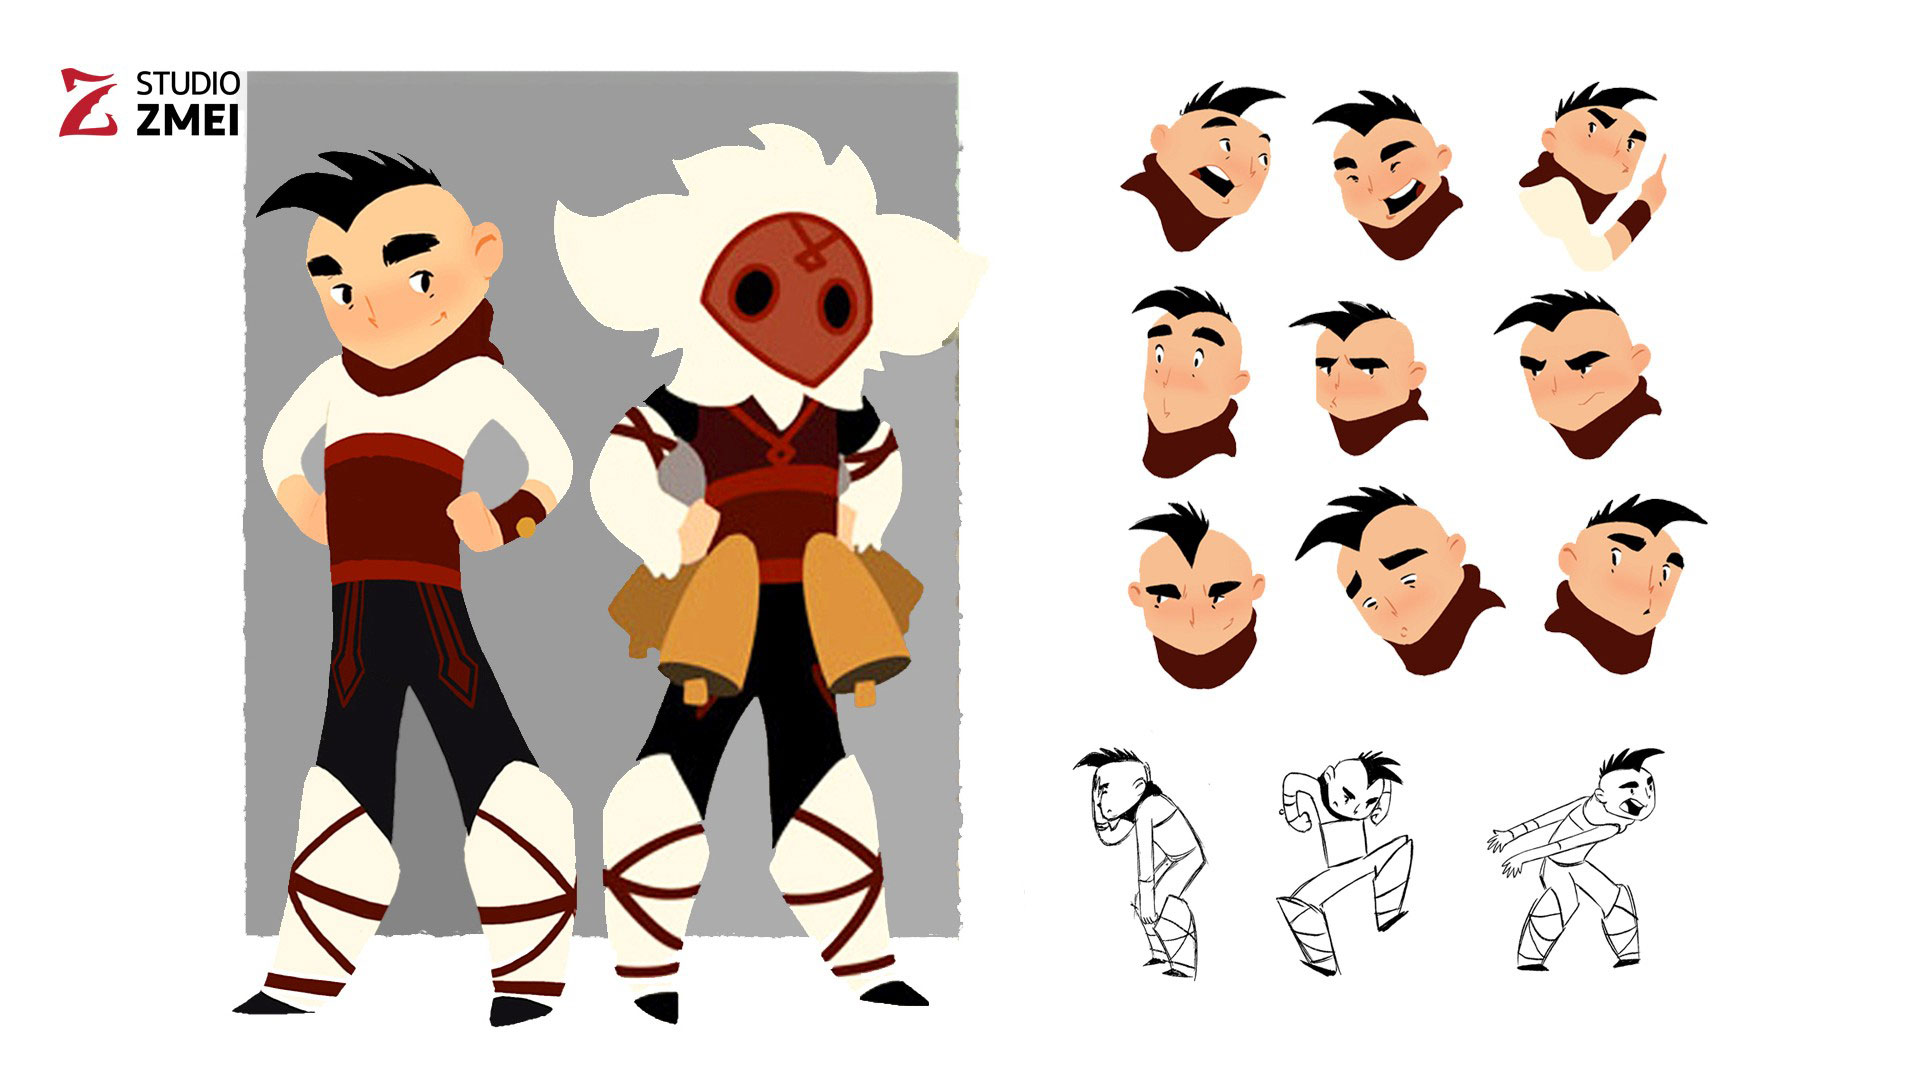 Character Design Web : Character design the golden apple studio zmei